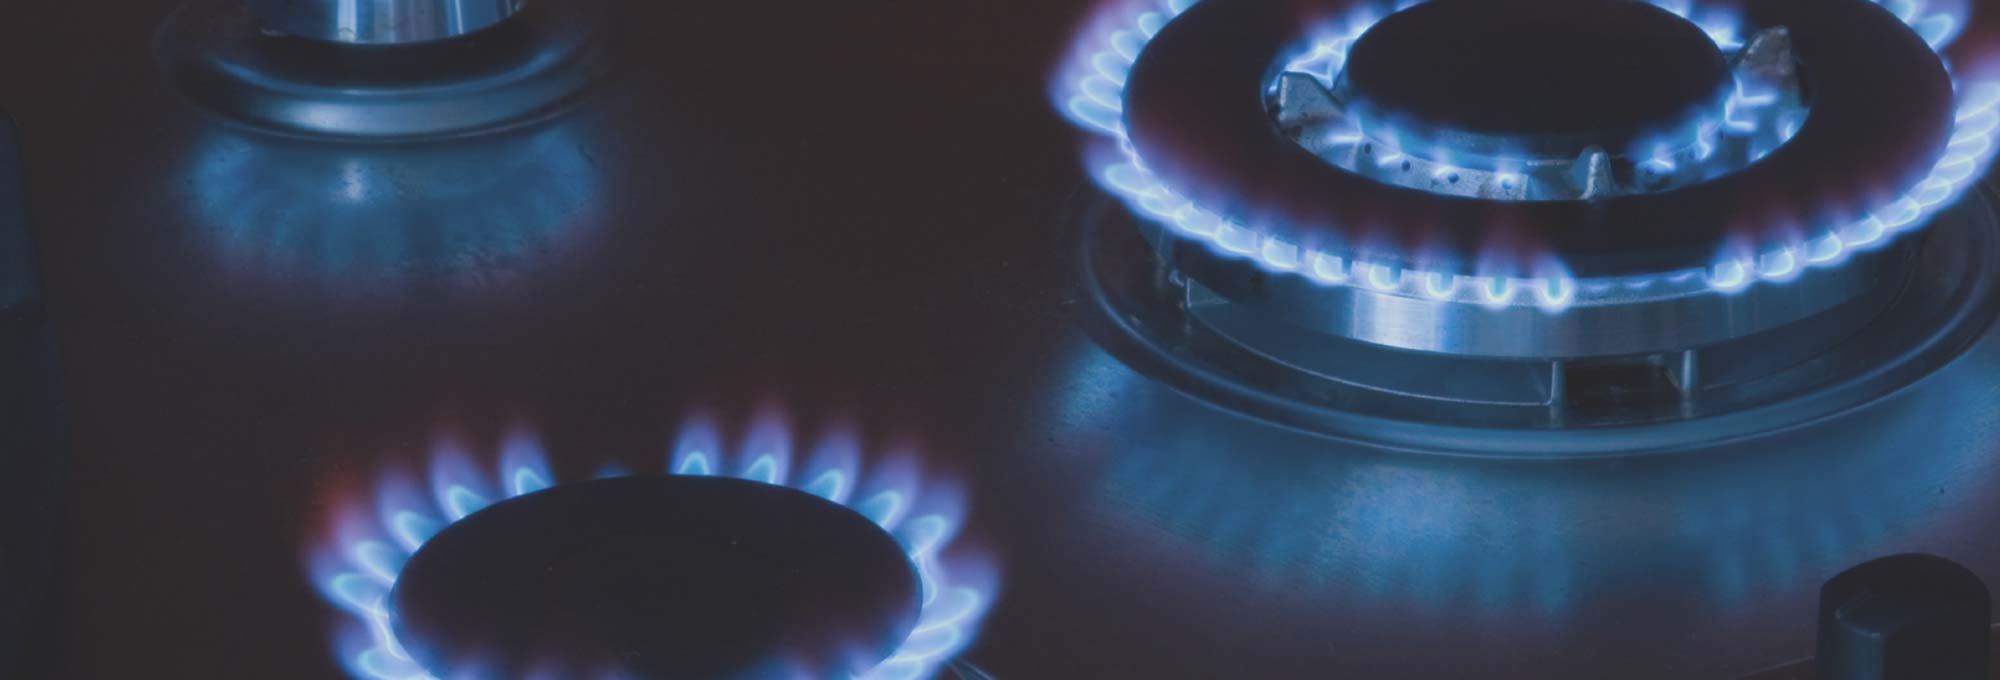 Shipley Energy Is the Trusted Source for Natural Gas in Harrisburg